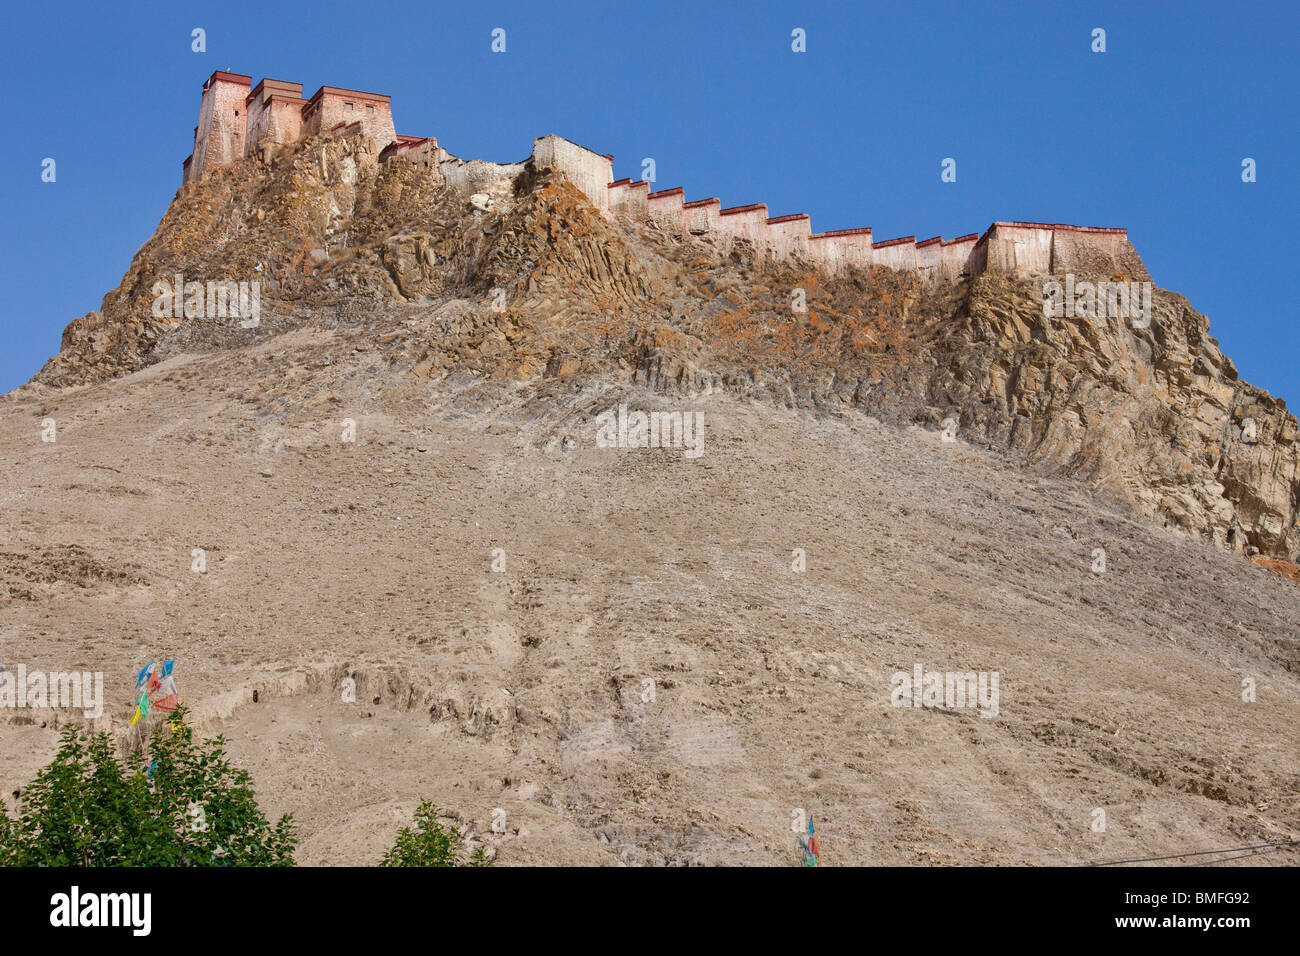 Gyantse Dzong or Fortress in Gyantse, Tibet Stock Photo